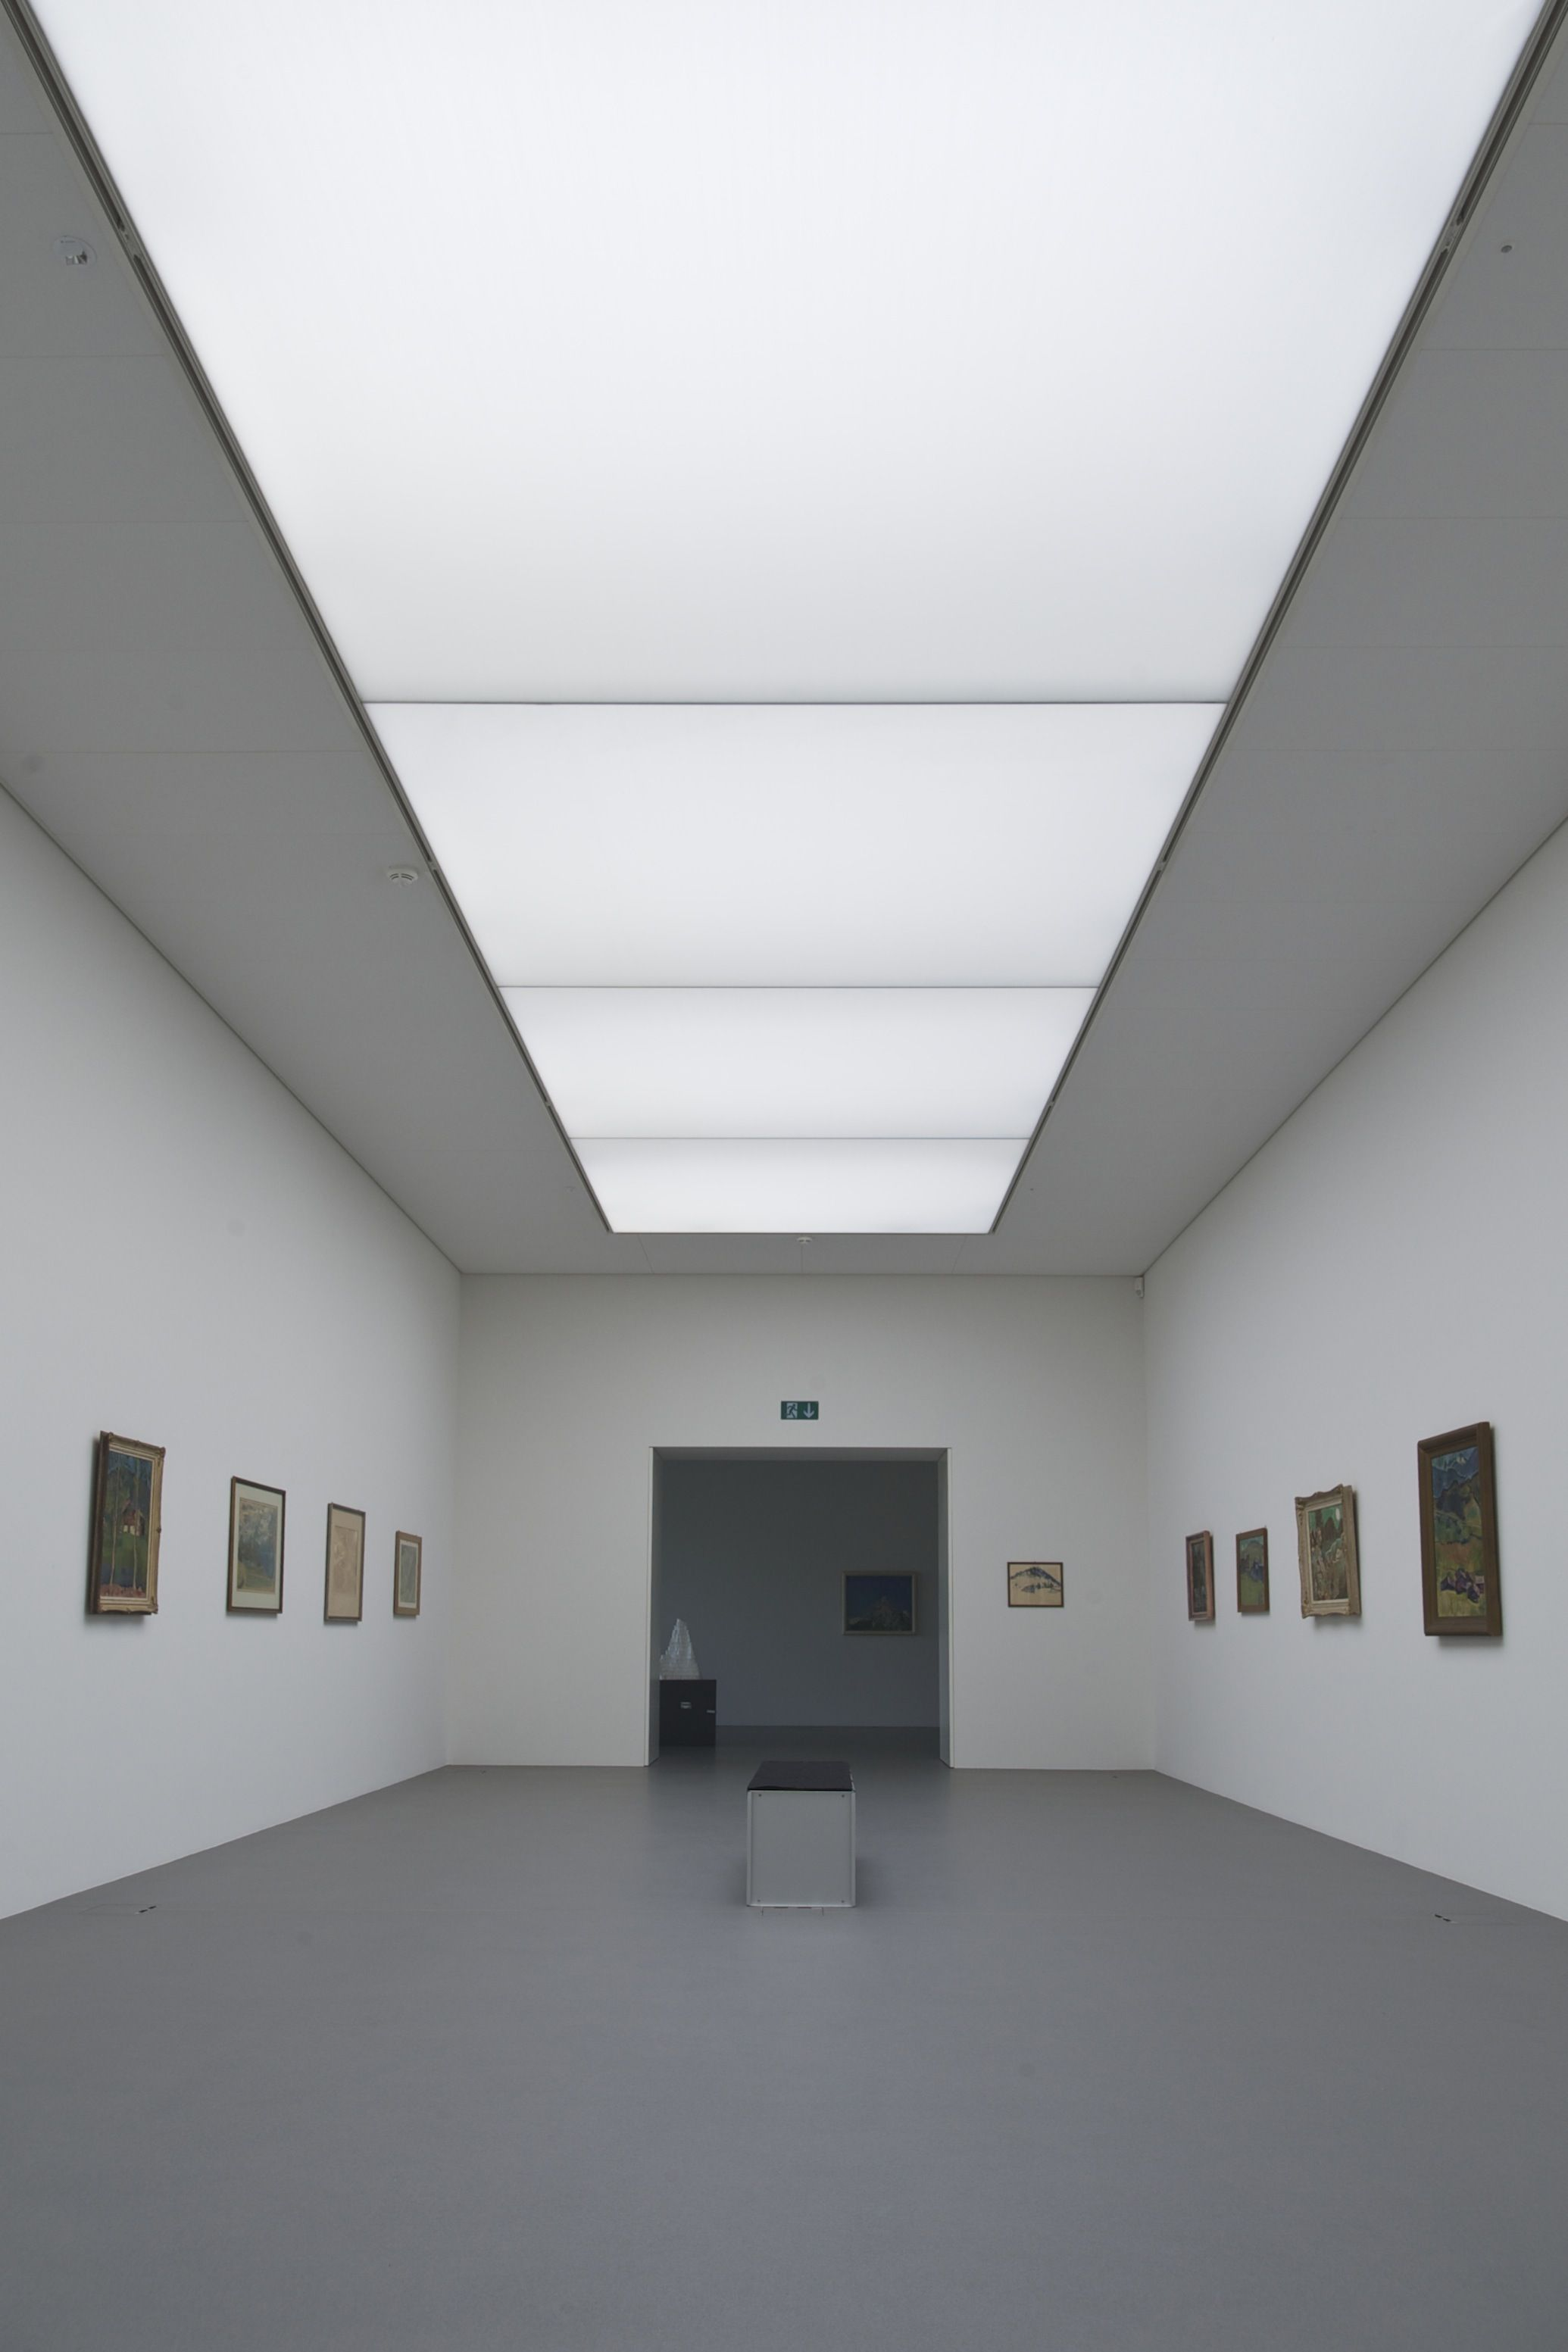 Sefar Lightframe Is The Only Fabric Ceiling System